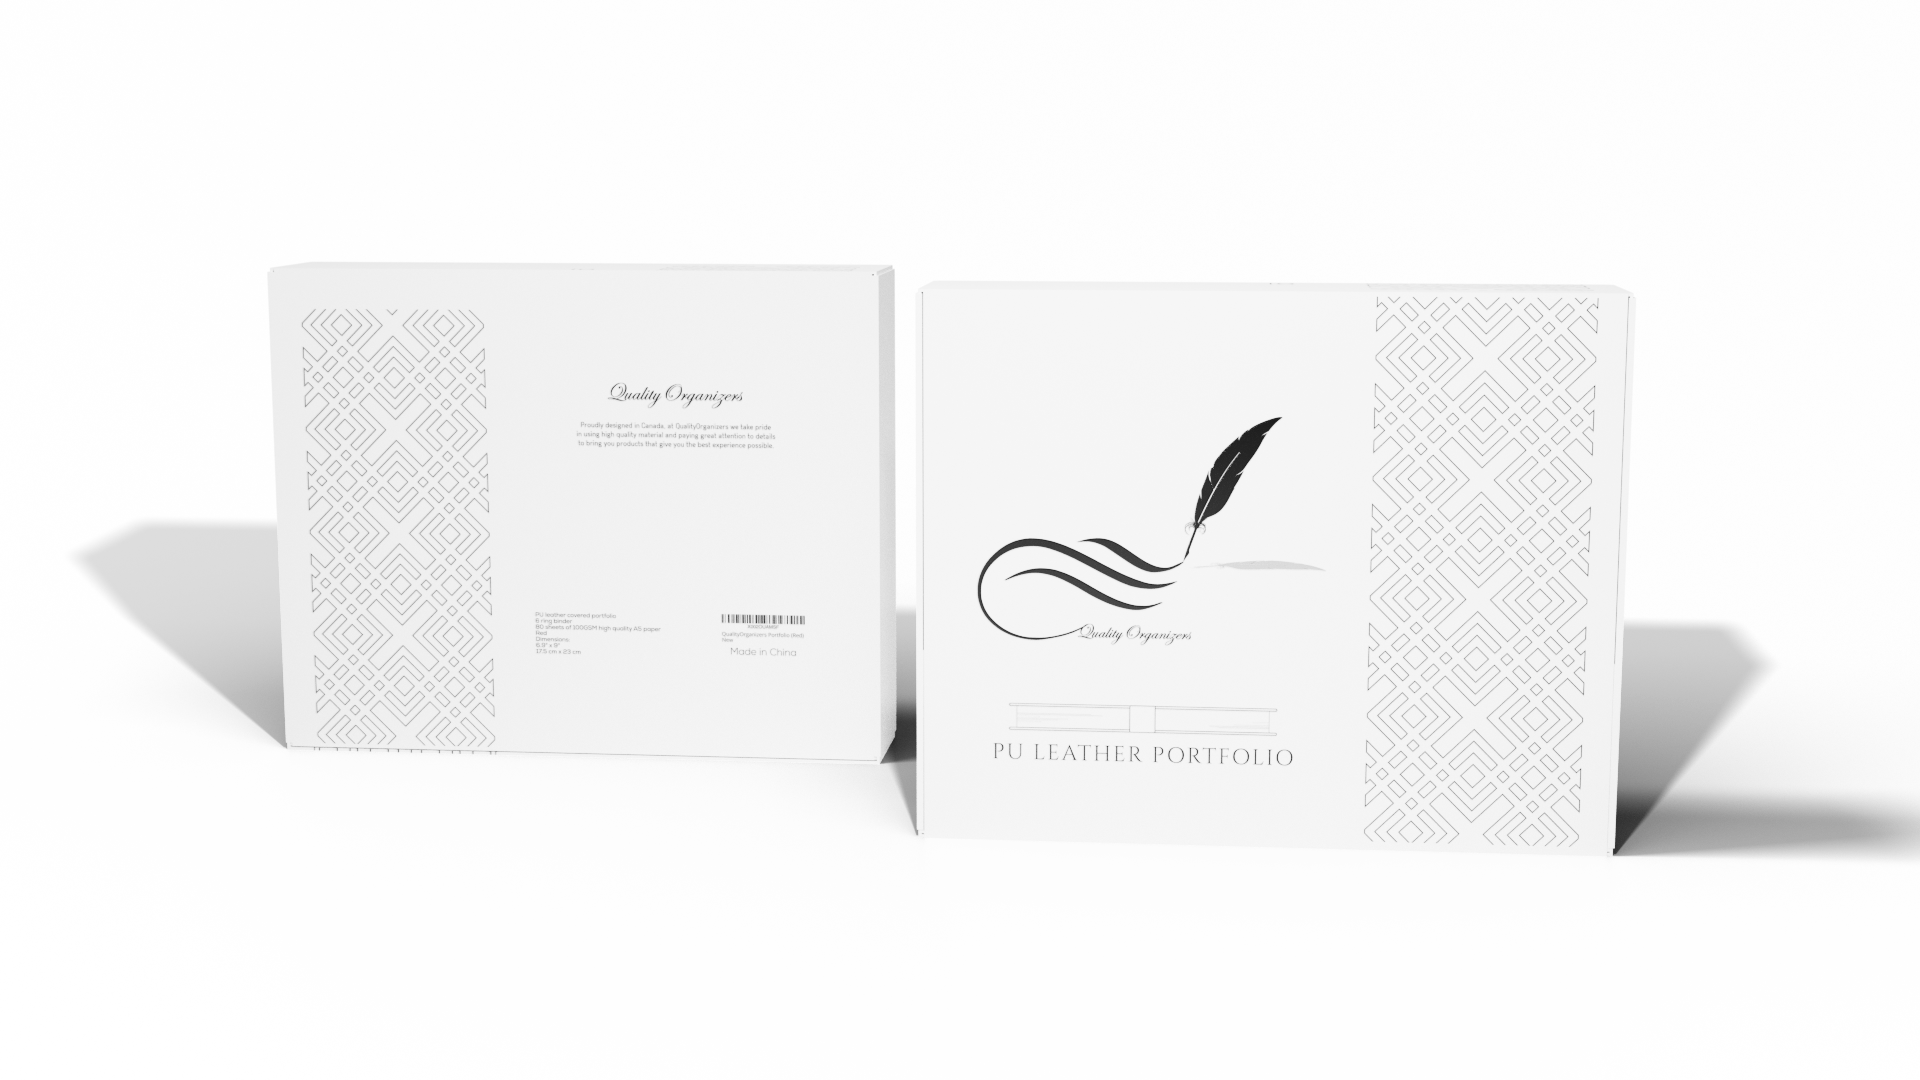 packaging for leather binder